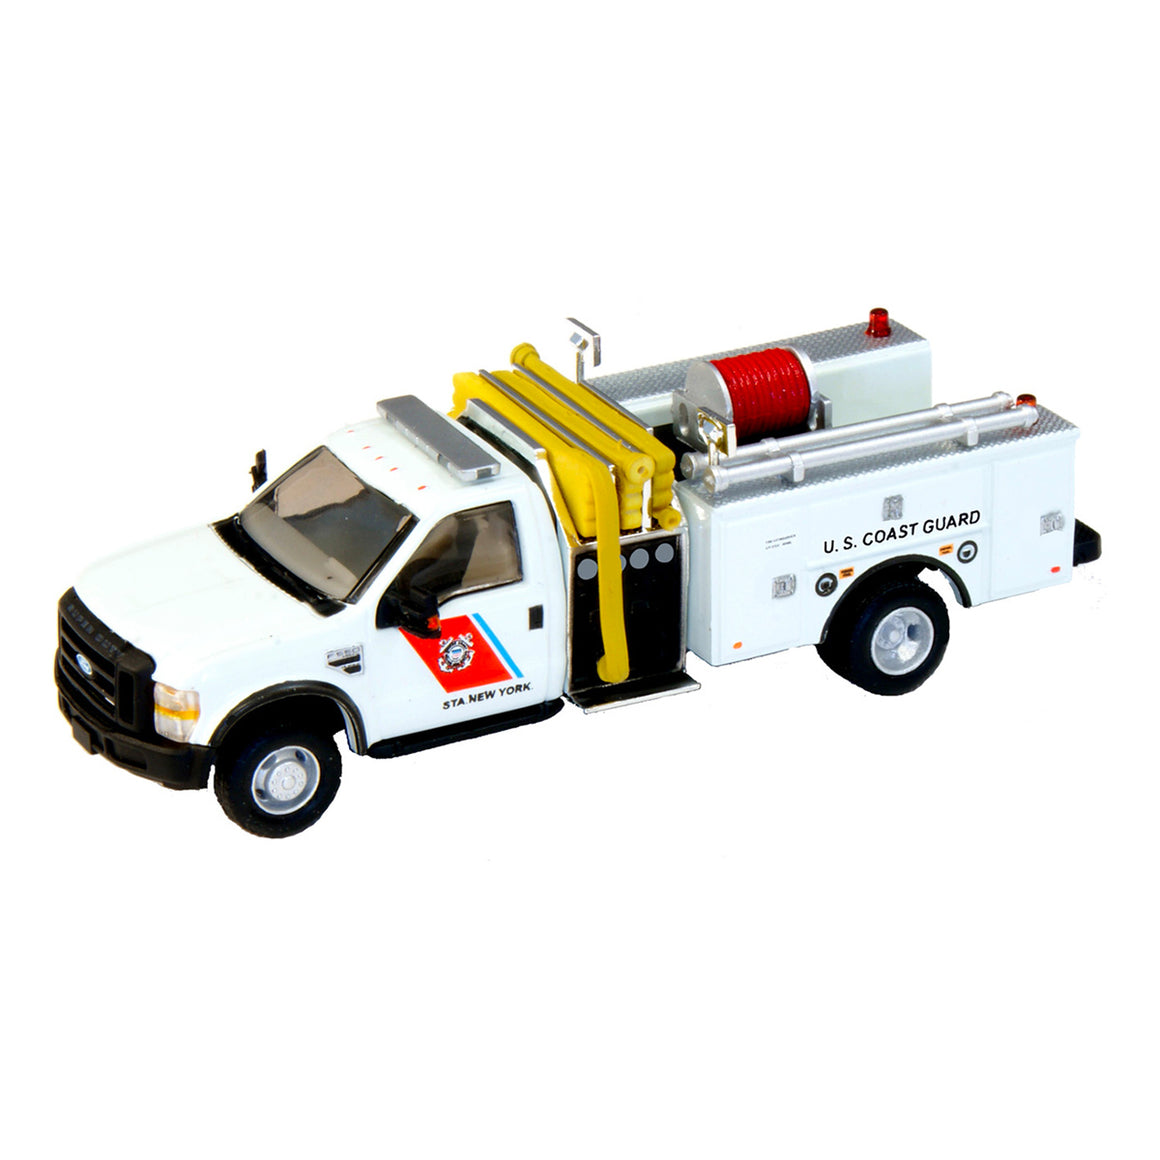 HO Scale: Lighted Ford F-550 - Mini Pumper Fire Truck - U.S. Coast Guard